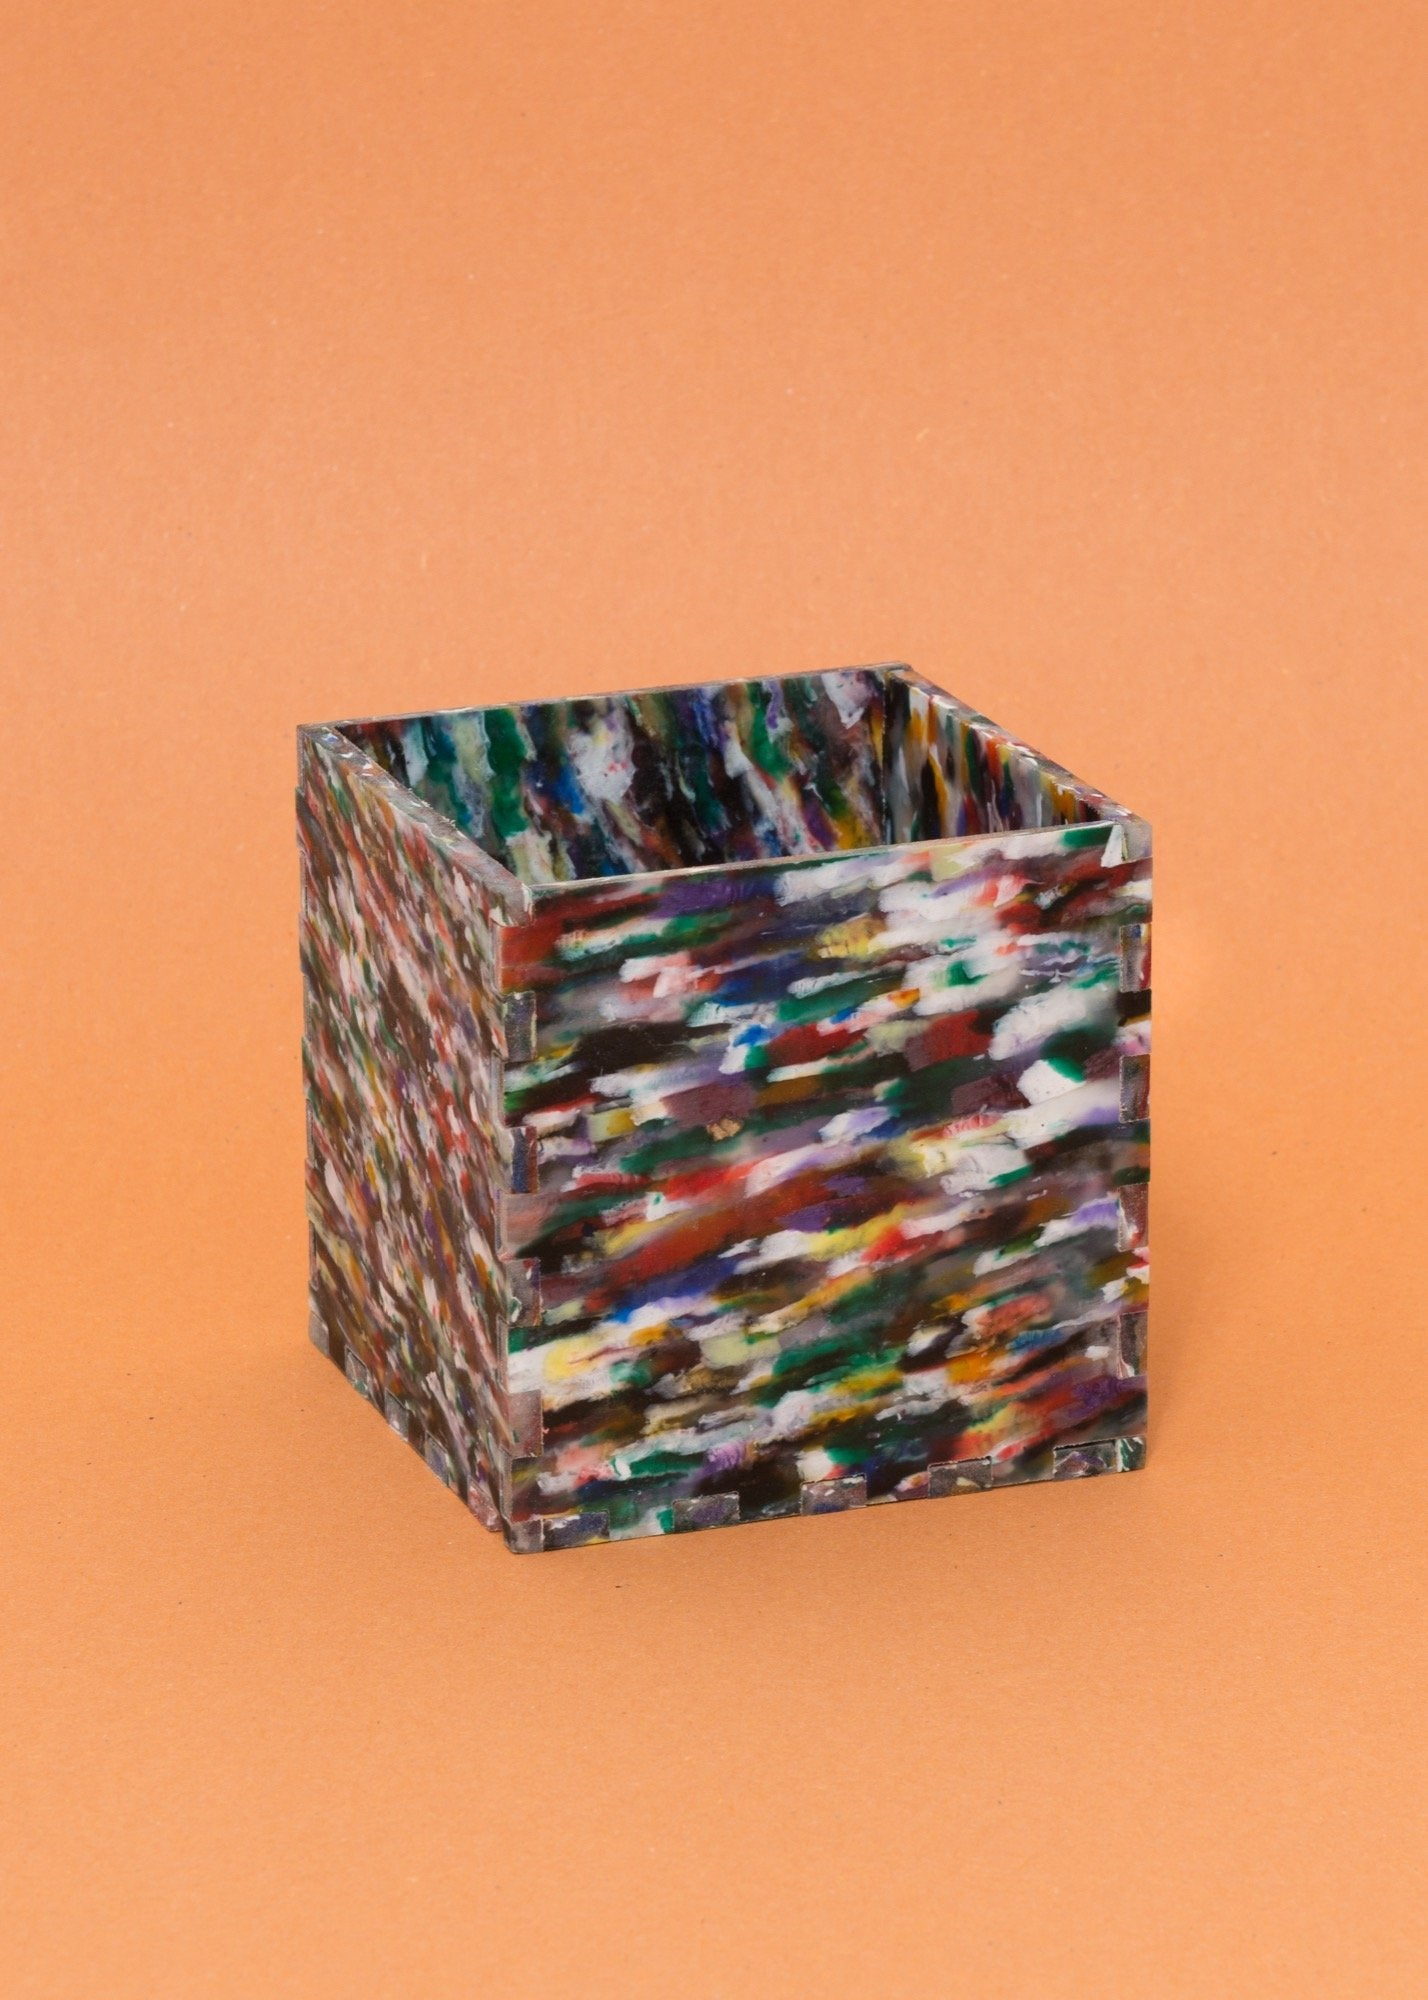 Recycled Plastic Box